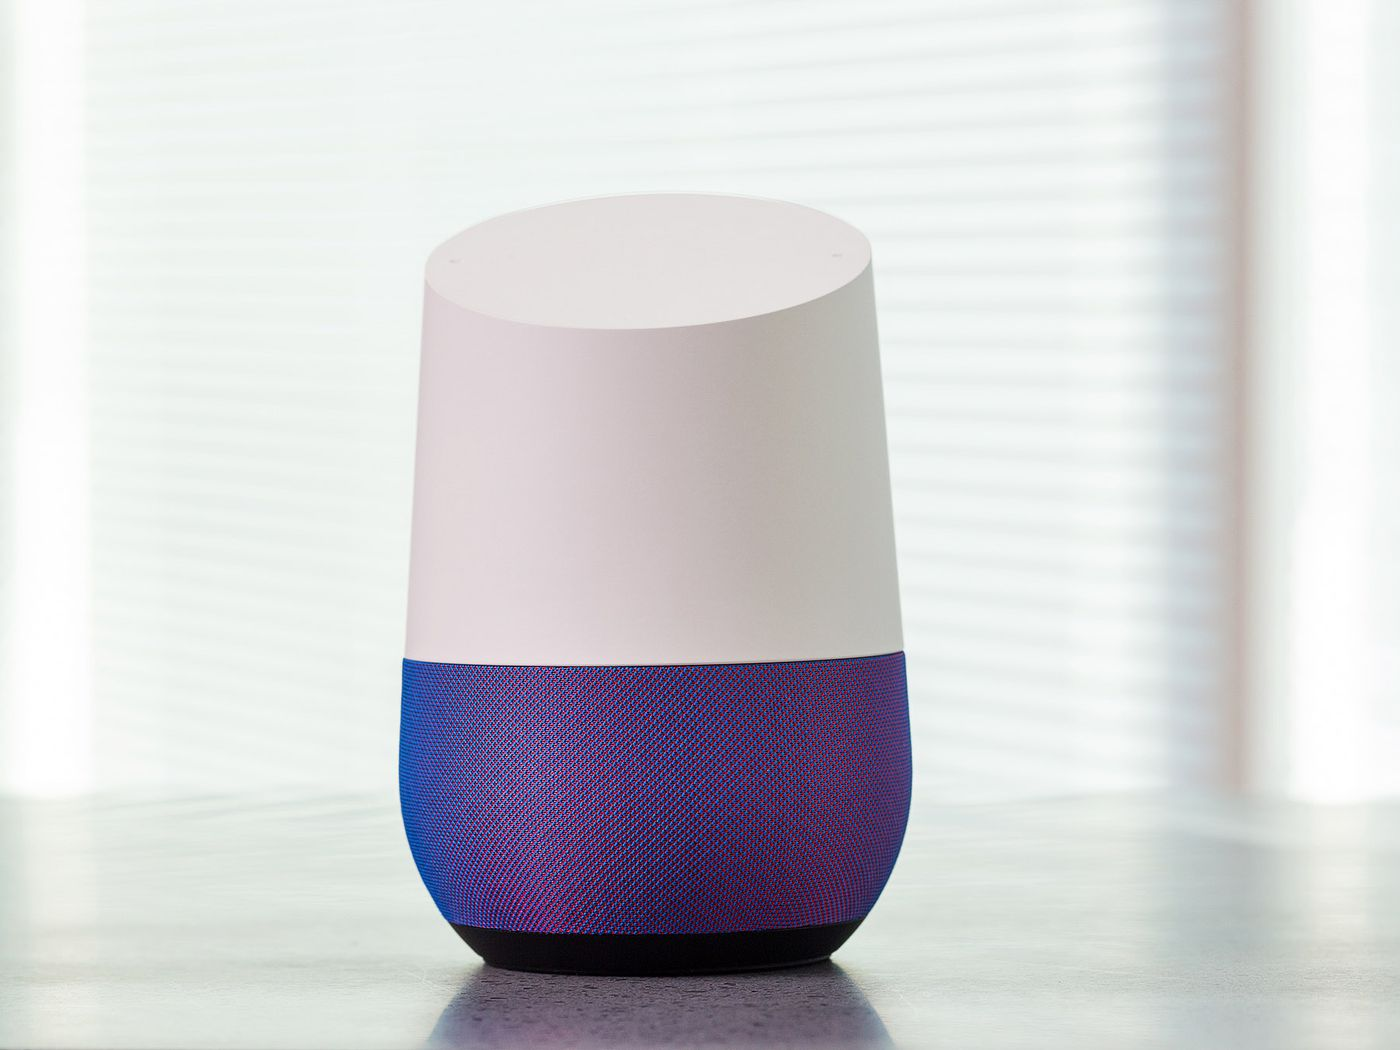 Google finally enables Bluetooth audio streaming for Home